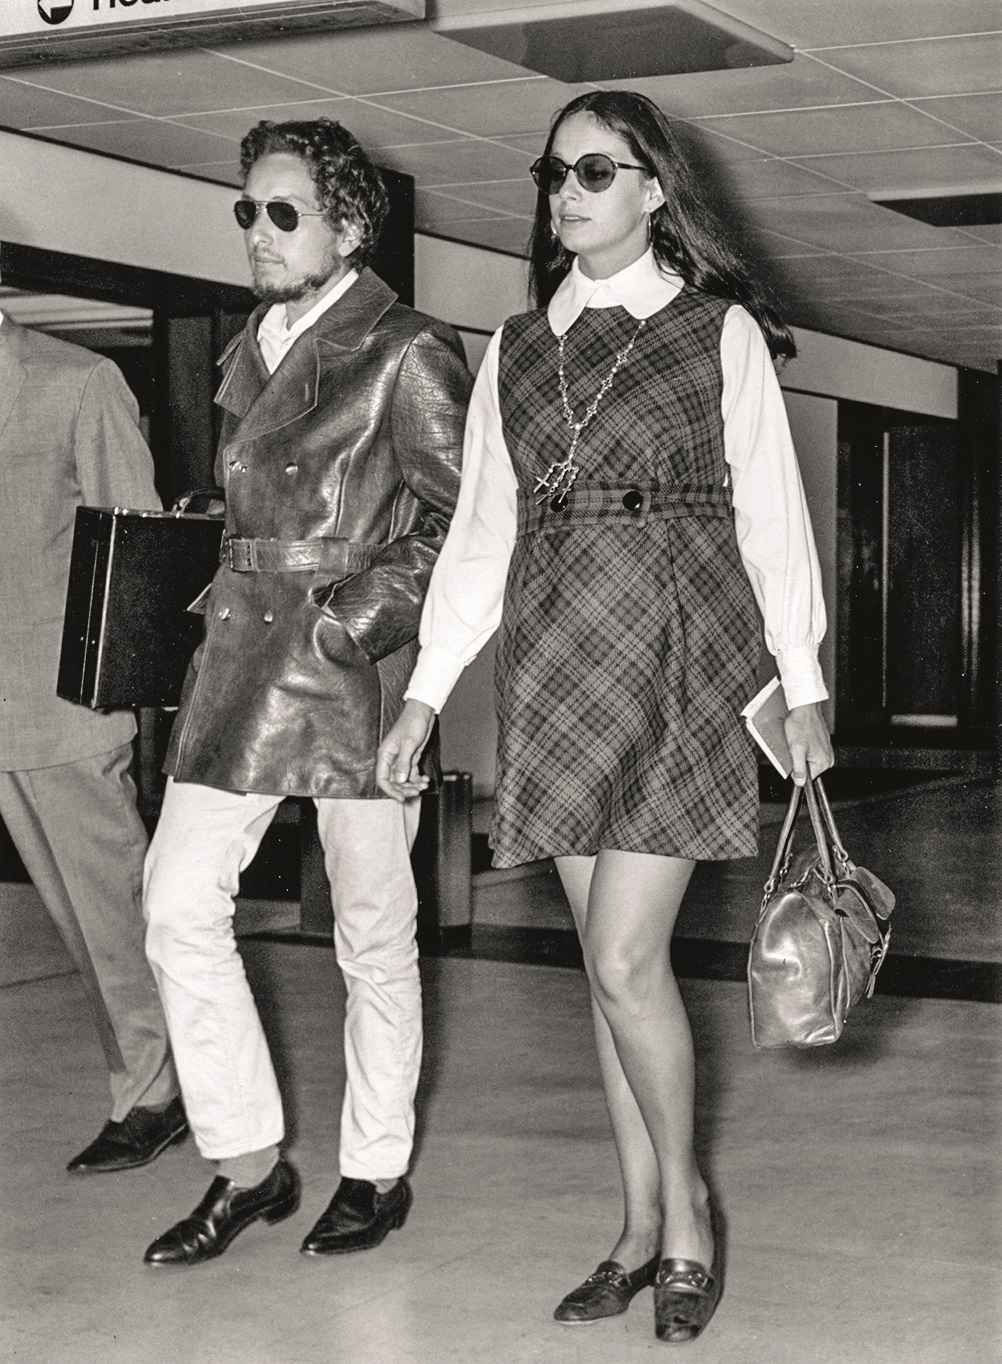 2nd September 1969:  American electric folk hero Bob Dylan (born Robert Zimmerman 1941 - ) arriving at an airport with his wife Sara.  (Photo by Evening Standard/Getty Images)